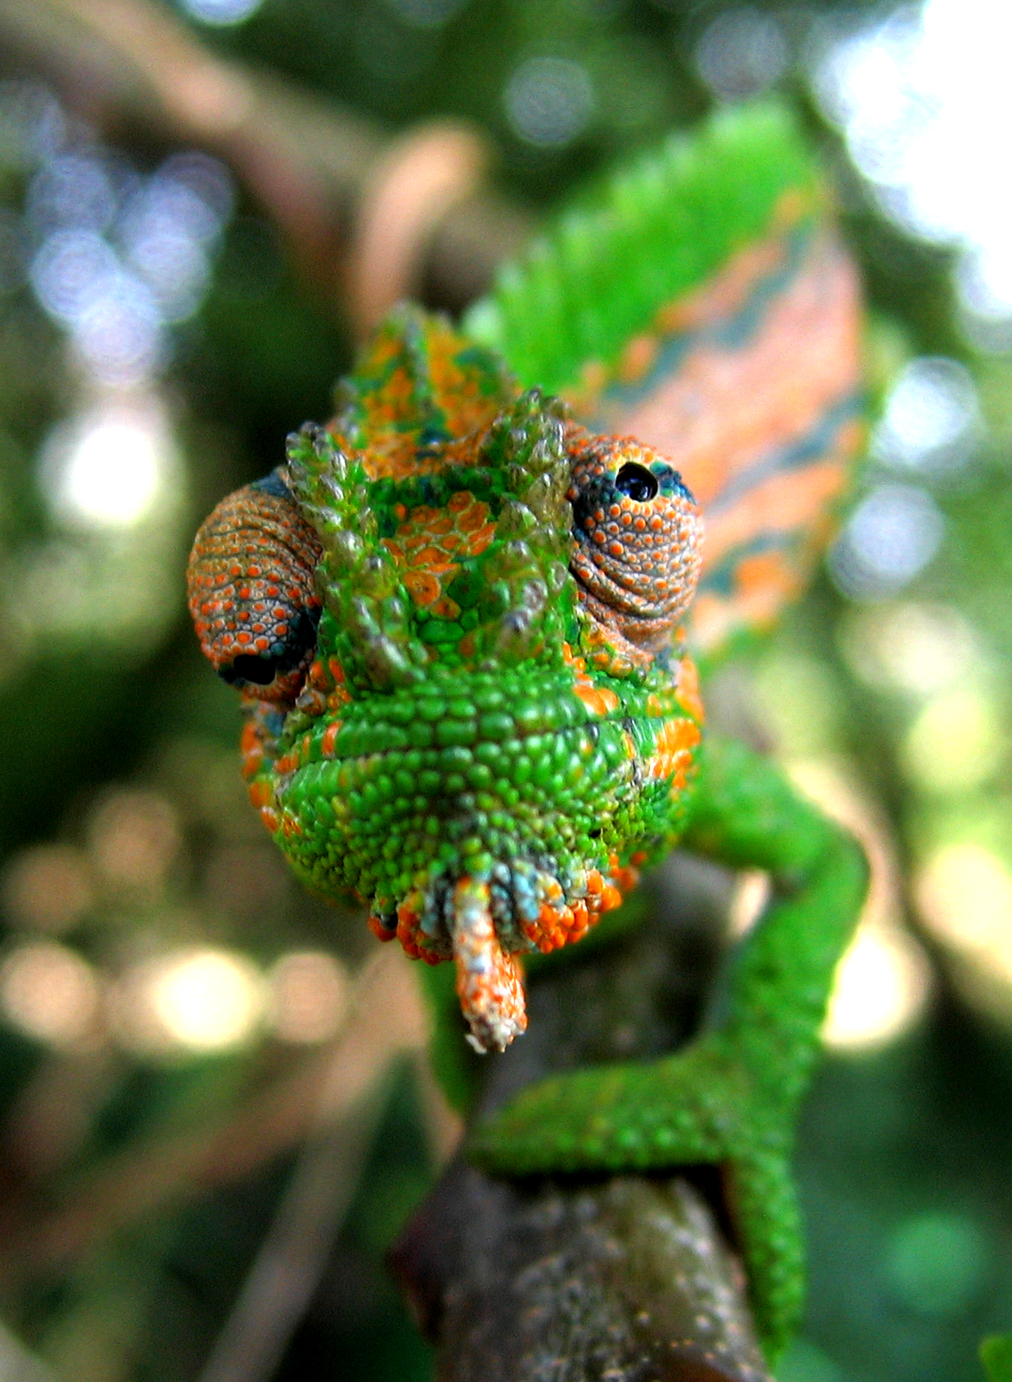 How does the chameleon change color